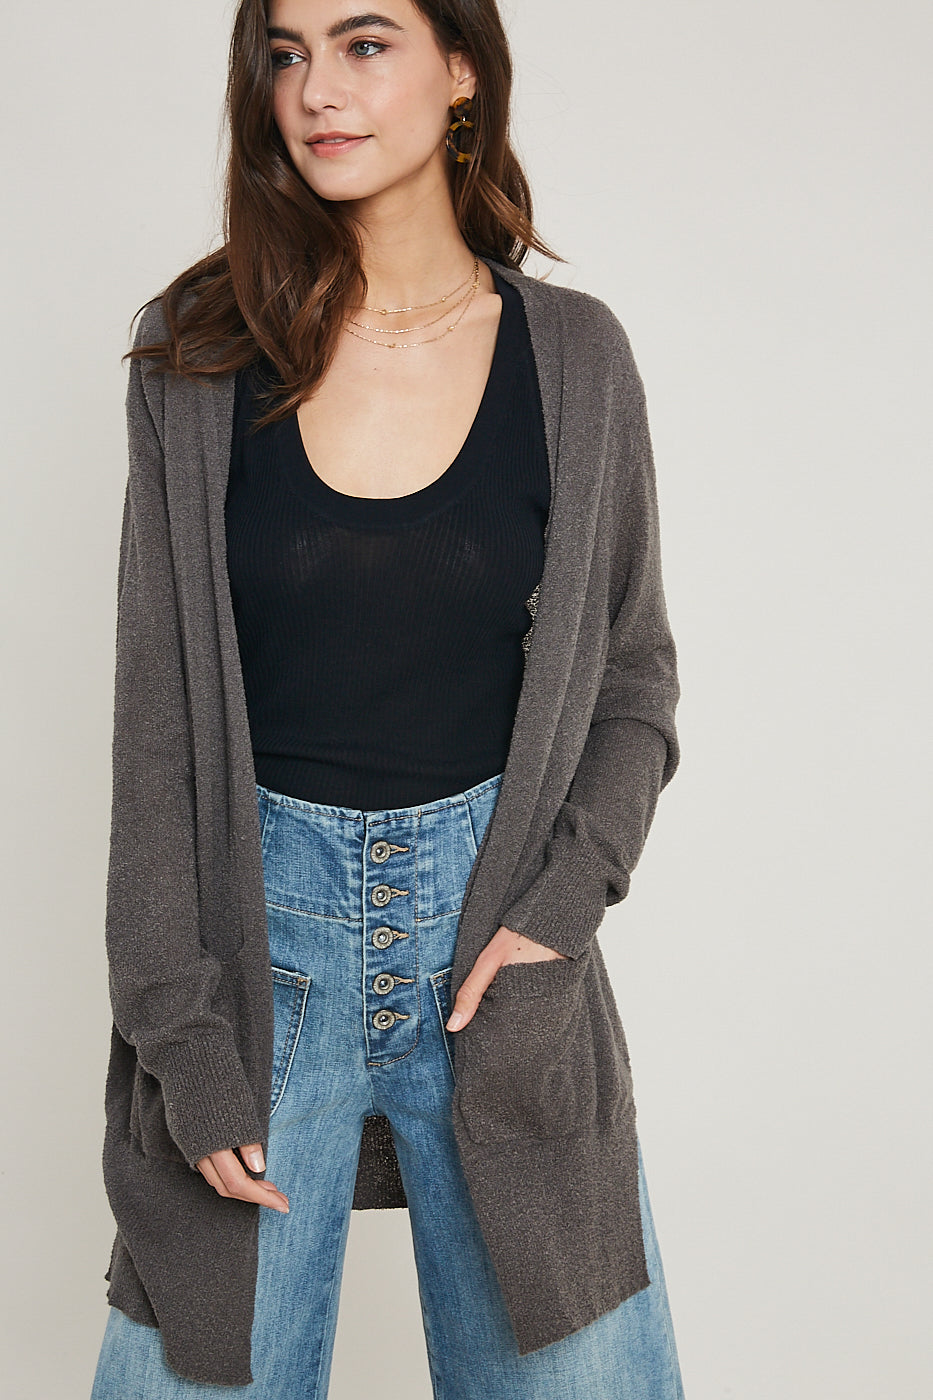 BOUCLE CARDIGAN W/POCKETS CHARCOAL